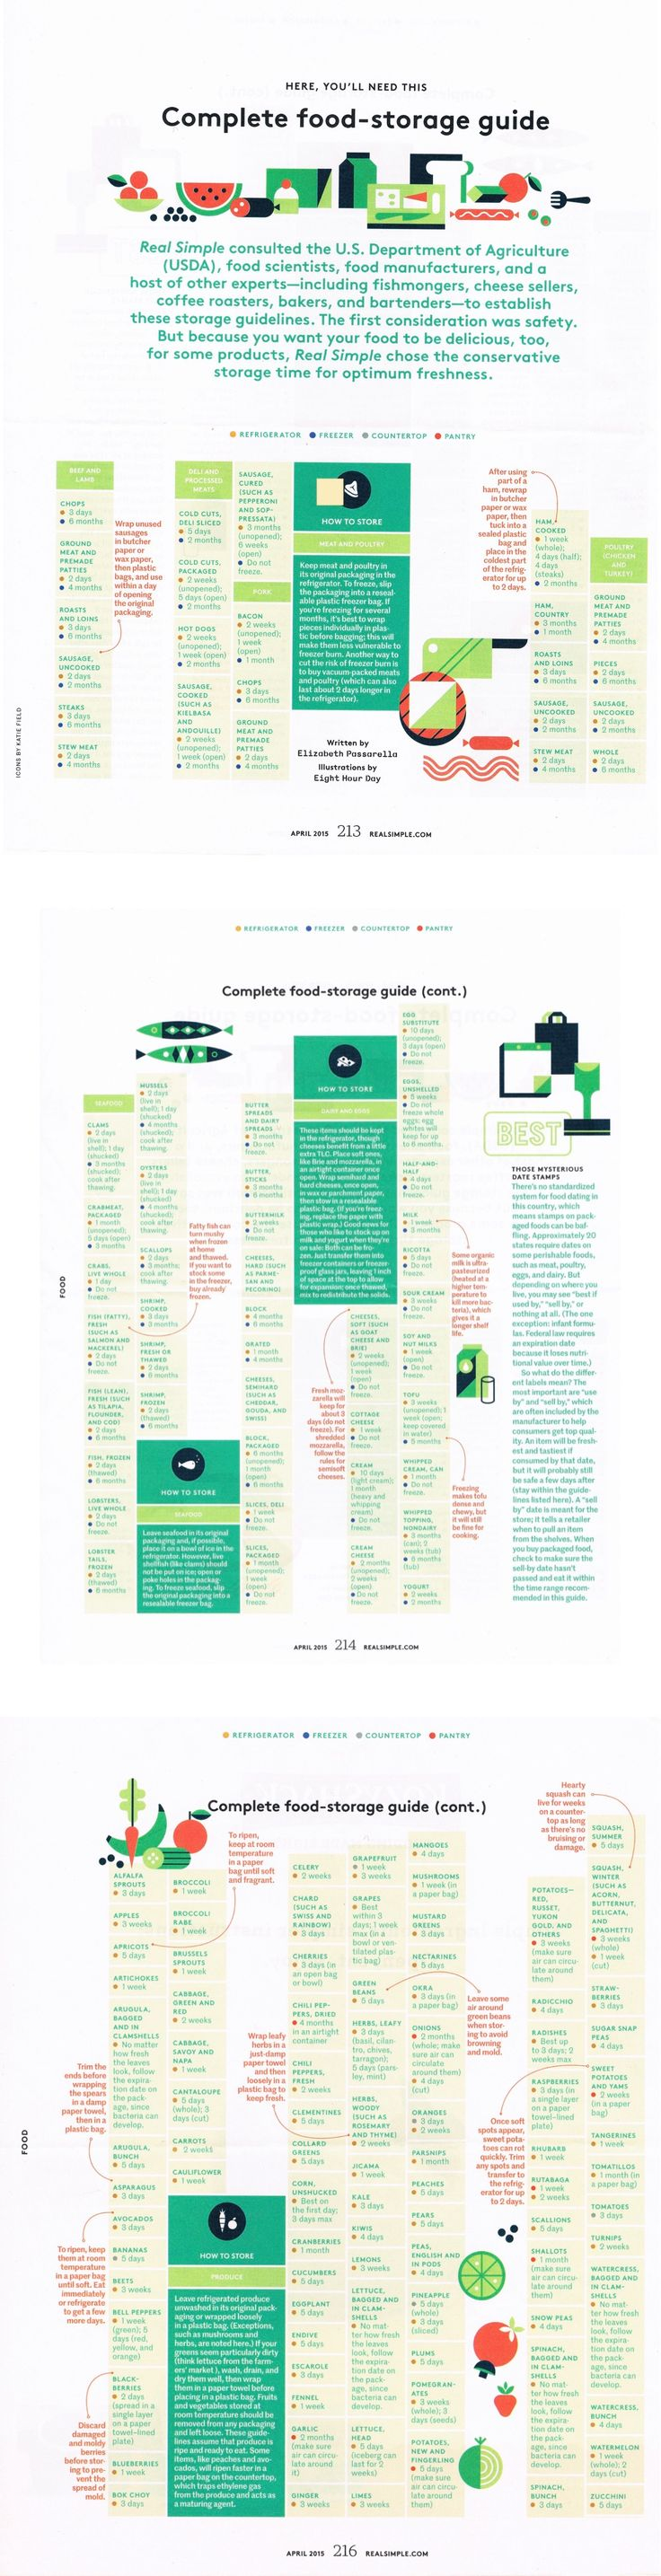 Complete Food-Storage Guide from Real Simple Magazine